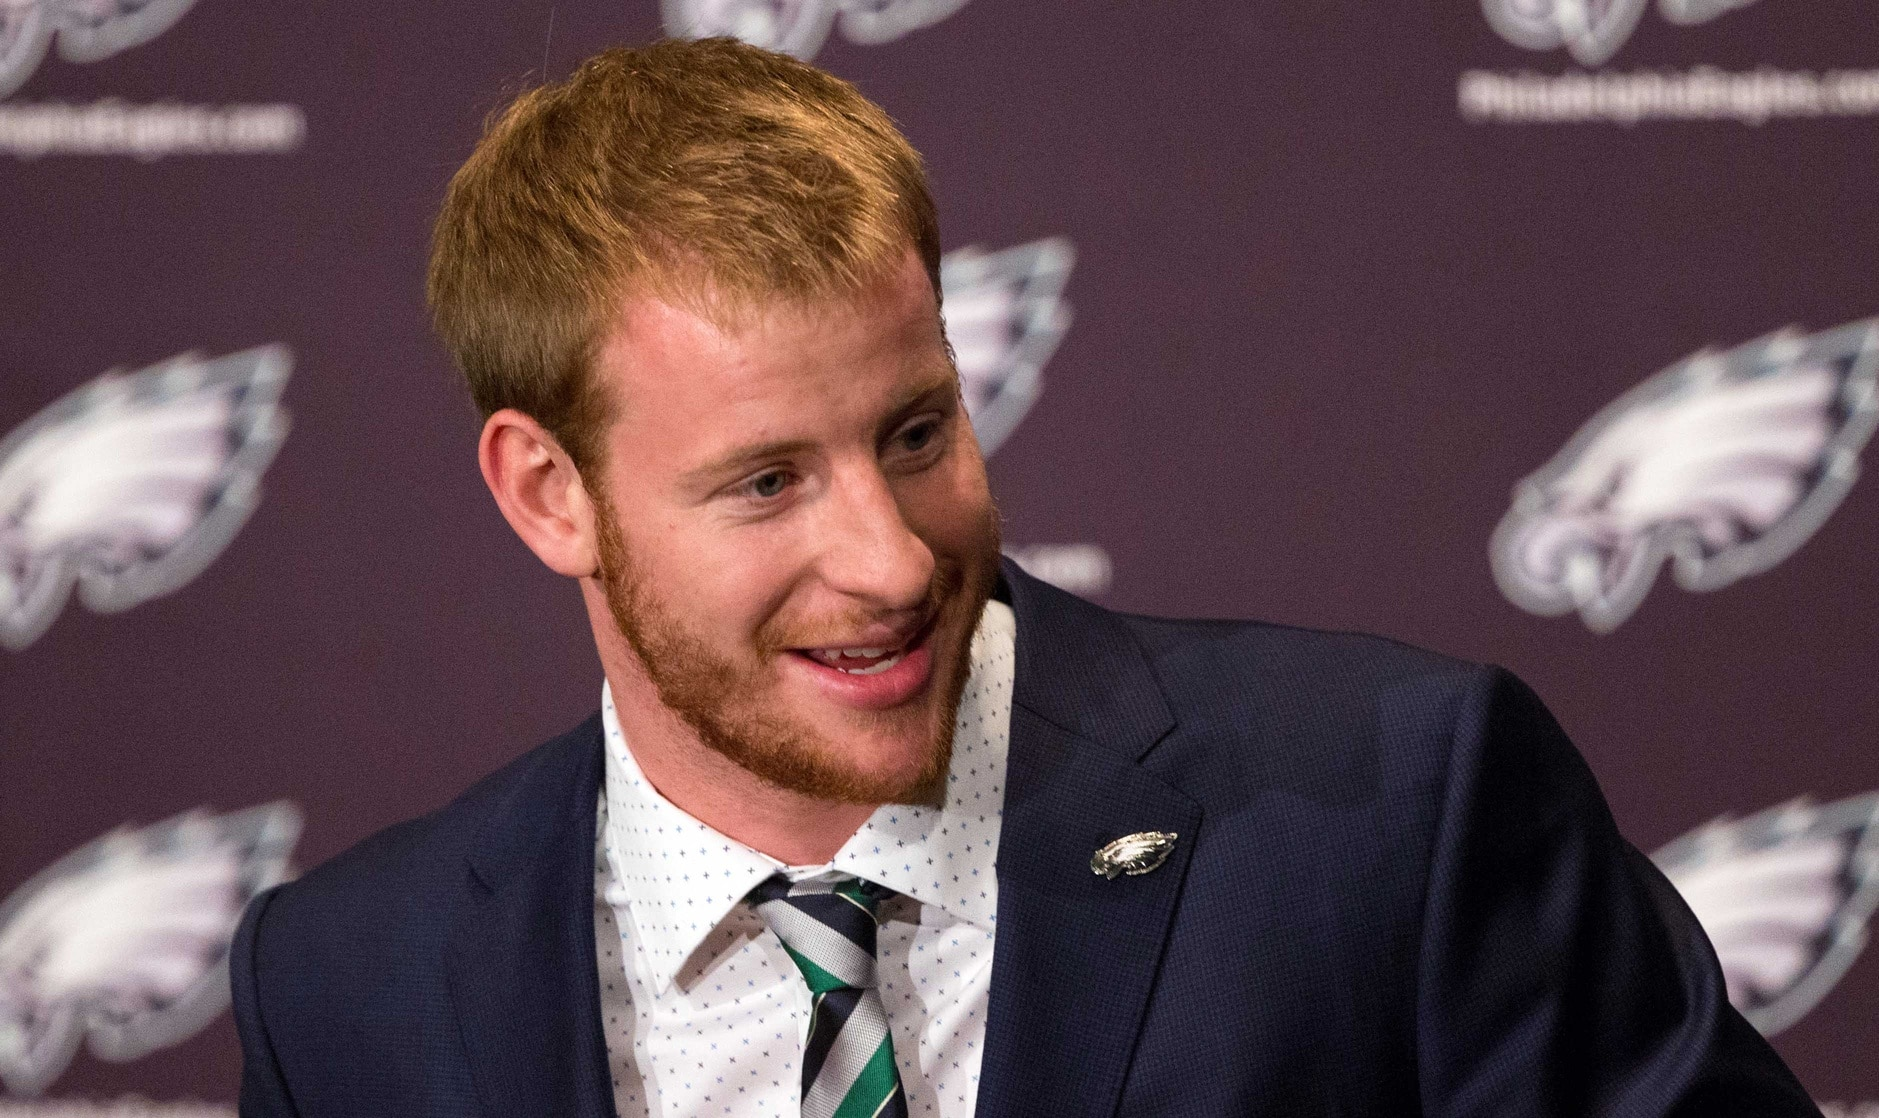 Carson Wentz Shares Adorable Pictures Of His Newborn First Child